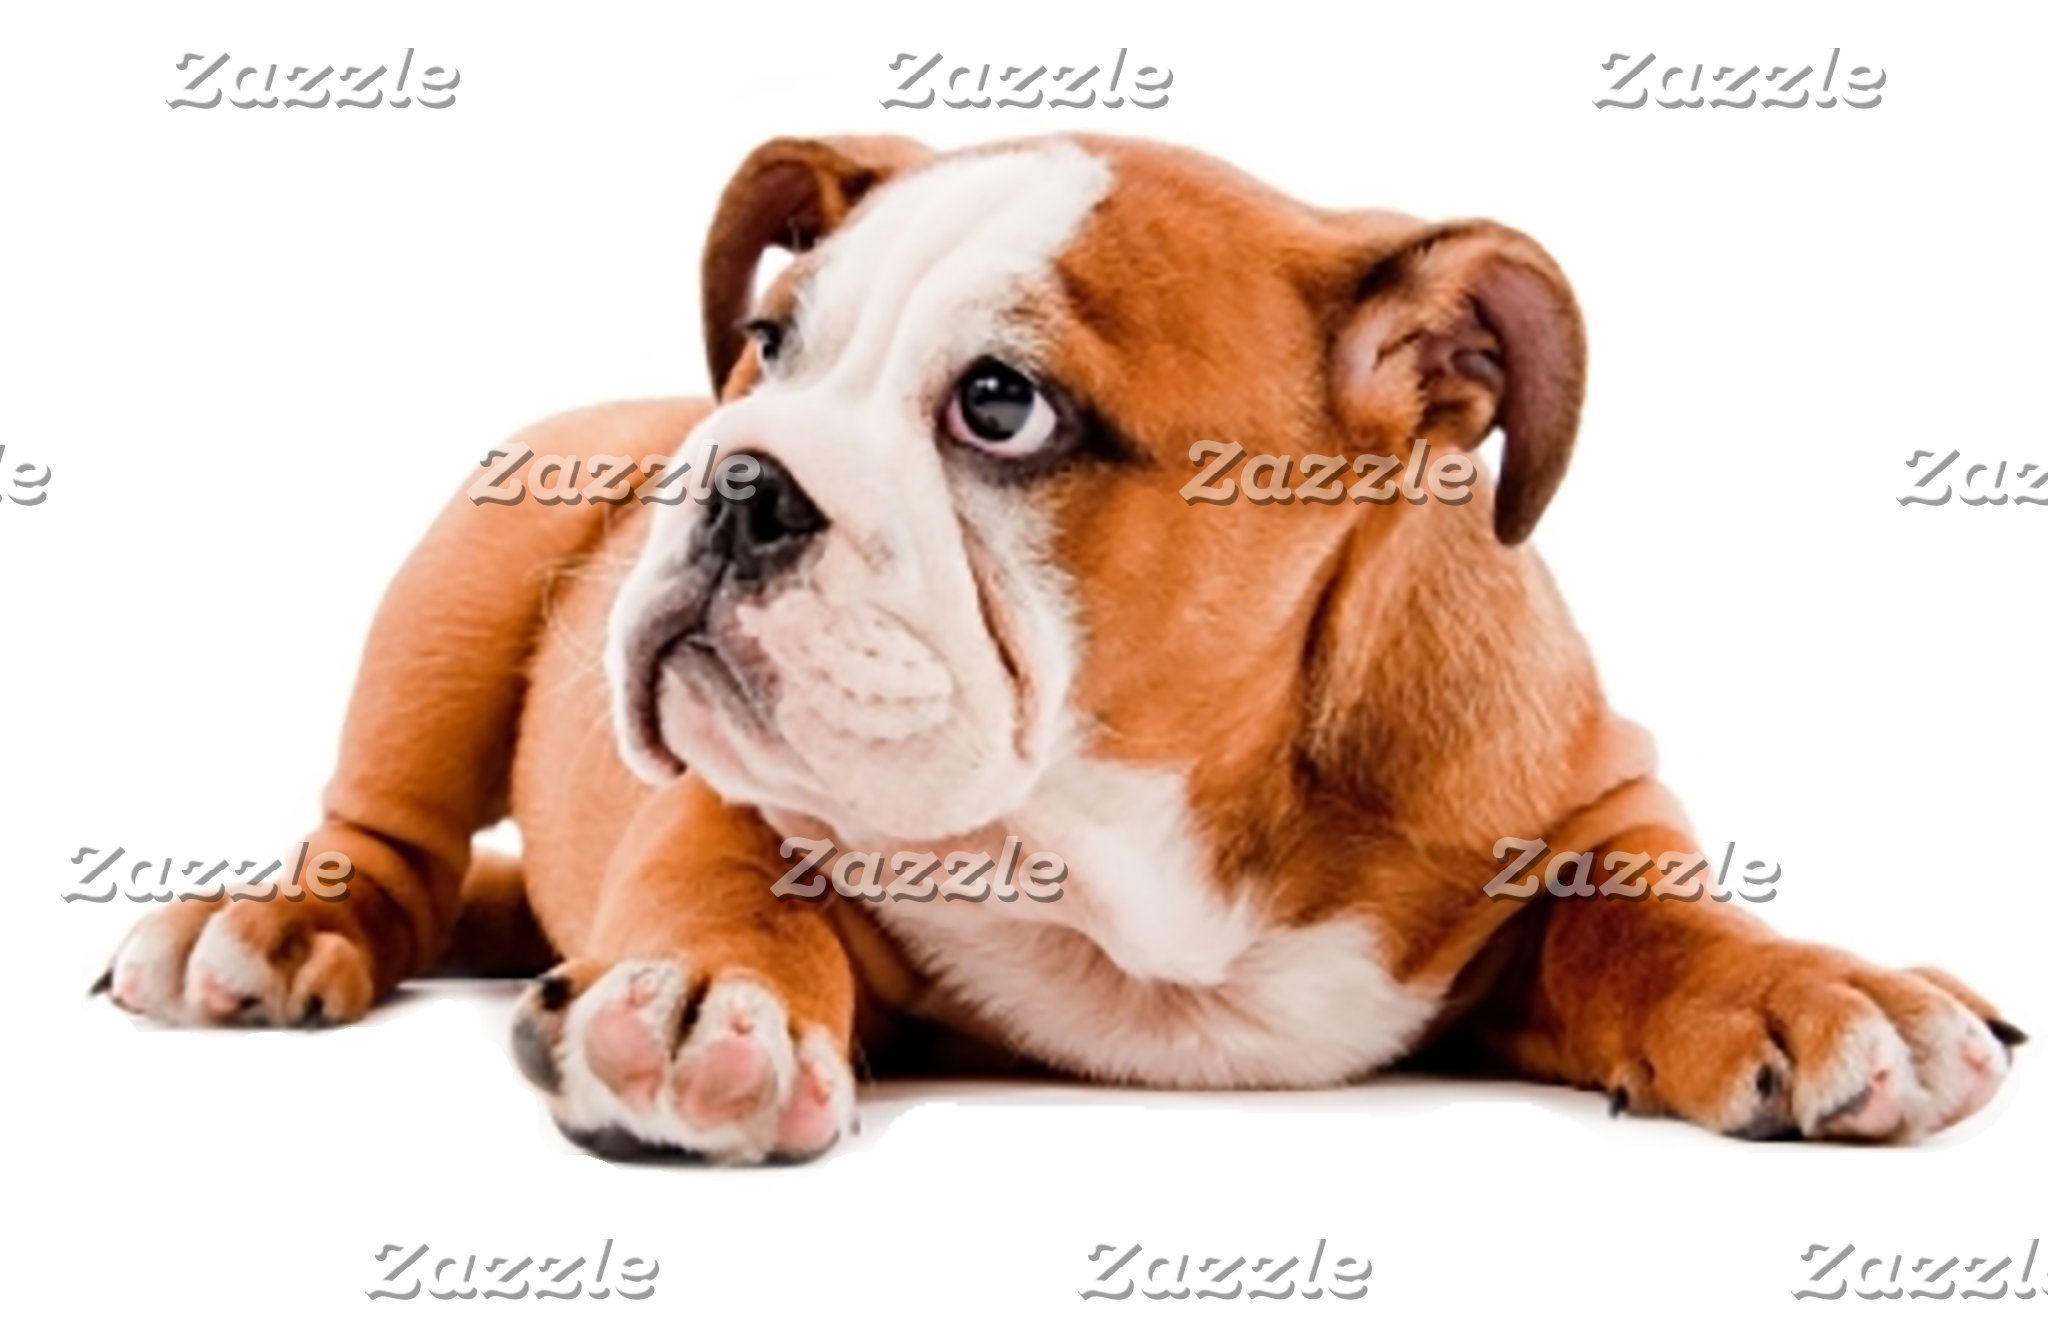 Bulldog - English